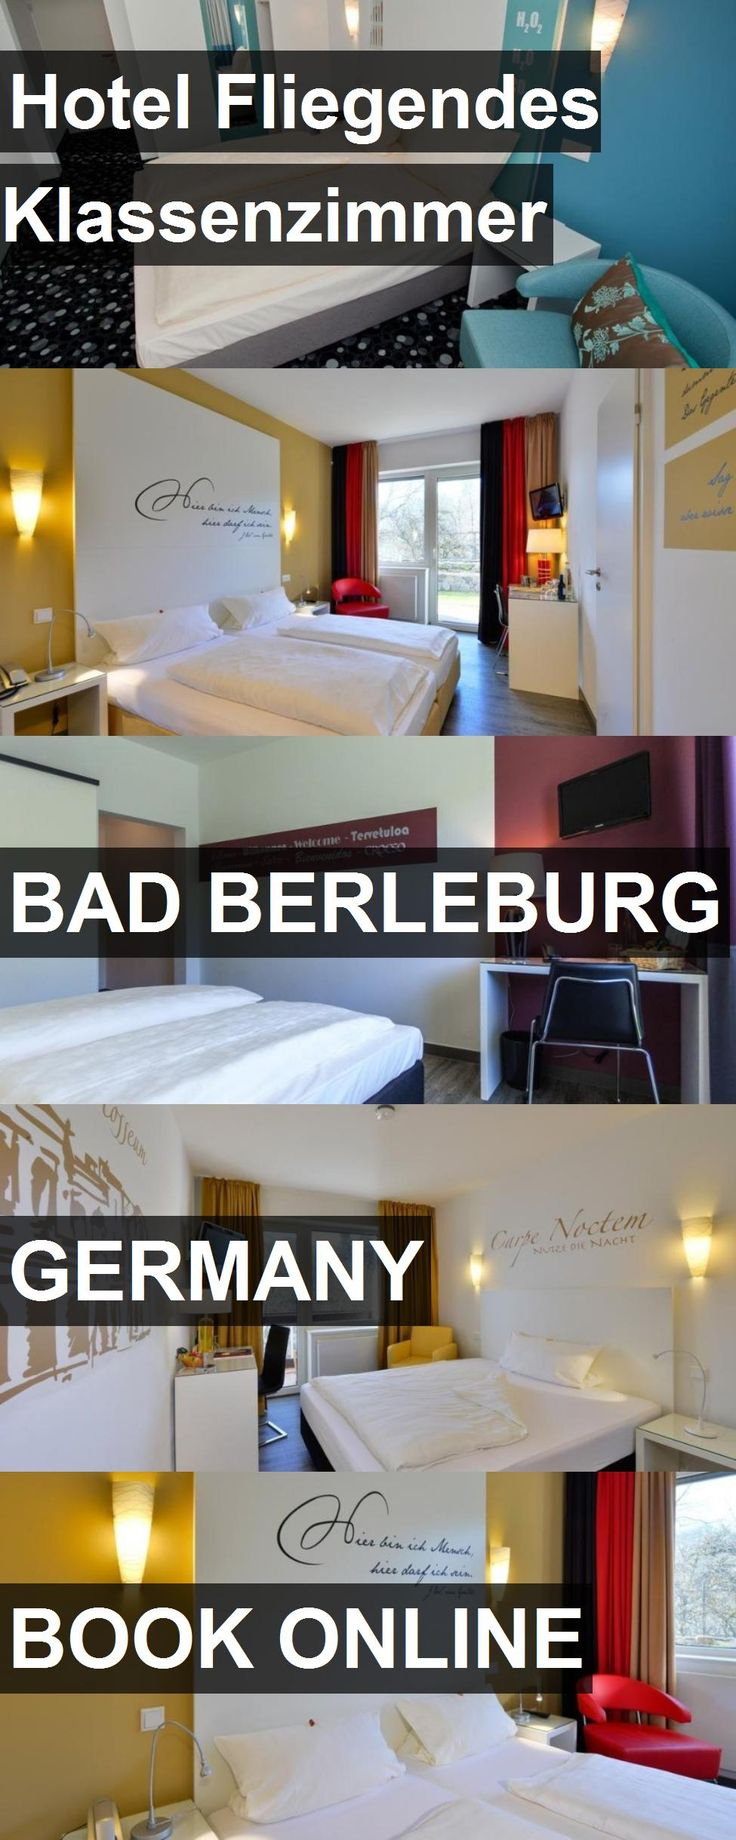 Hotel Fliegendes Klassenzimmer in Bad Berleburg, Germany. For more information, photos, reviews and best prices please follow the link. #Germany #BadBerleburg #travel #vacation #hotel